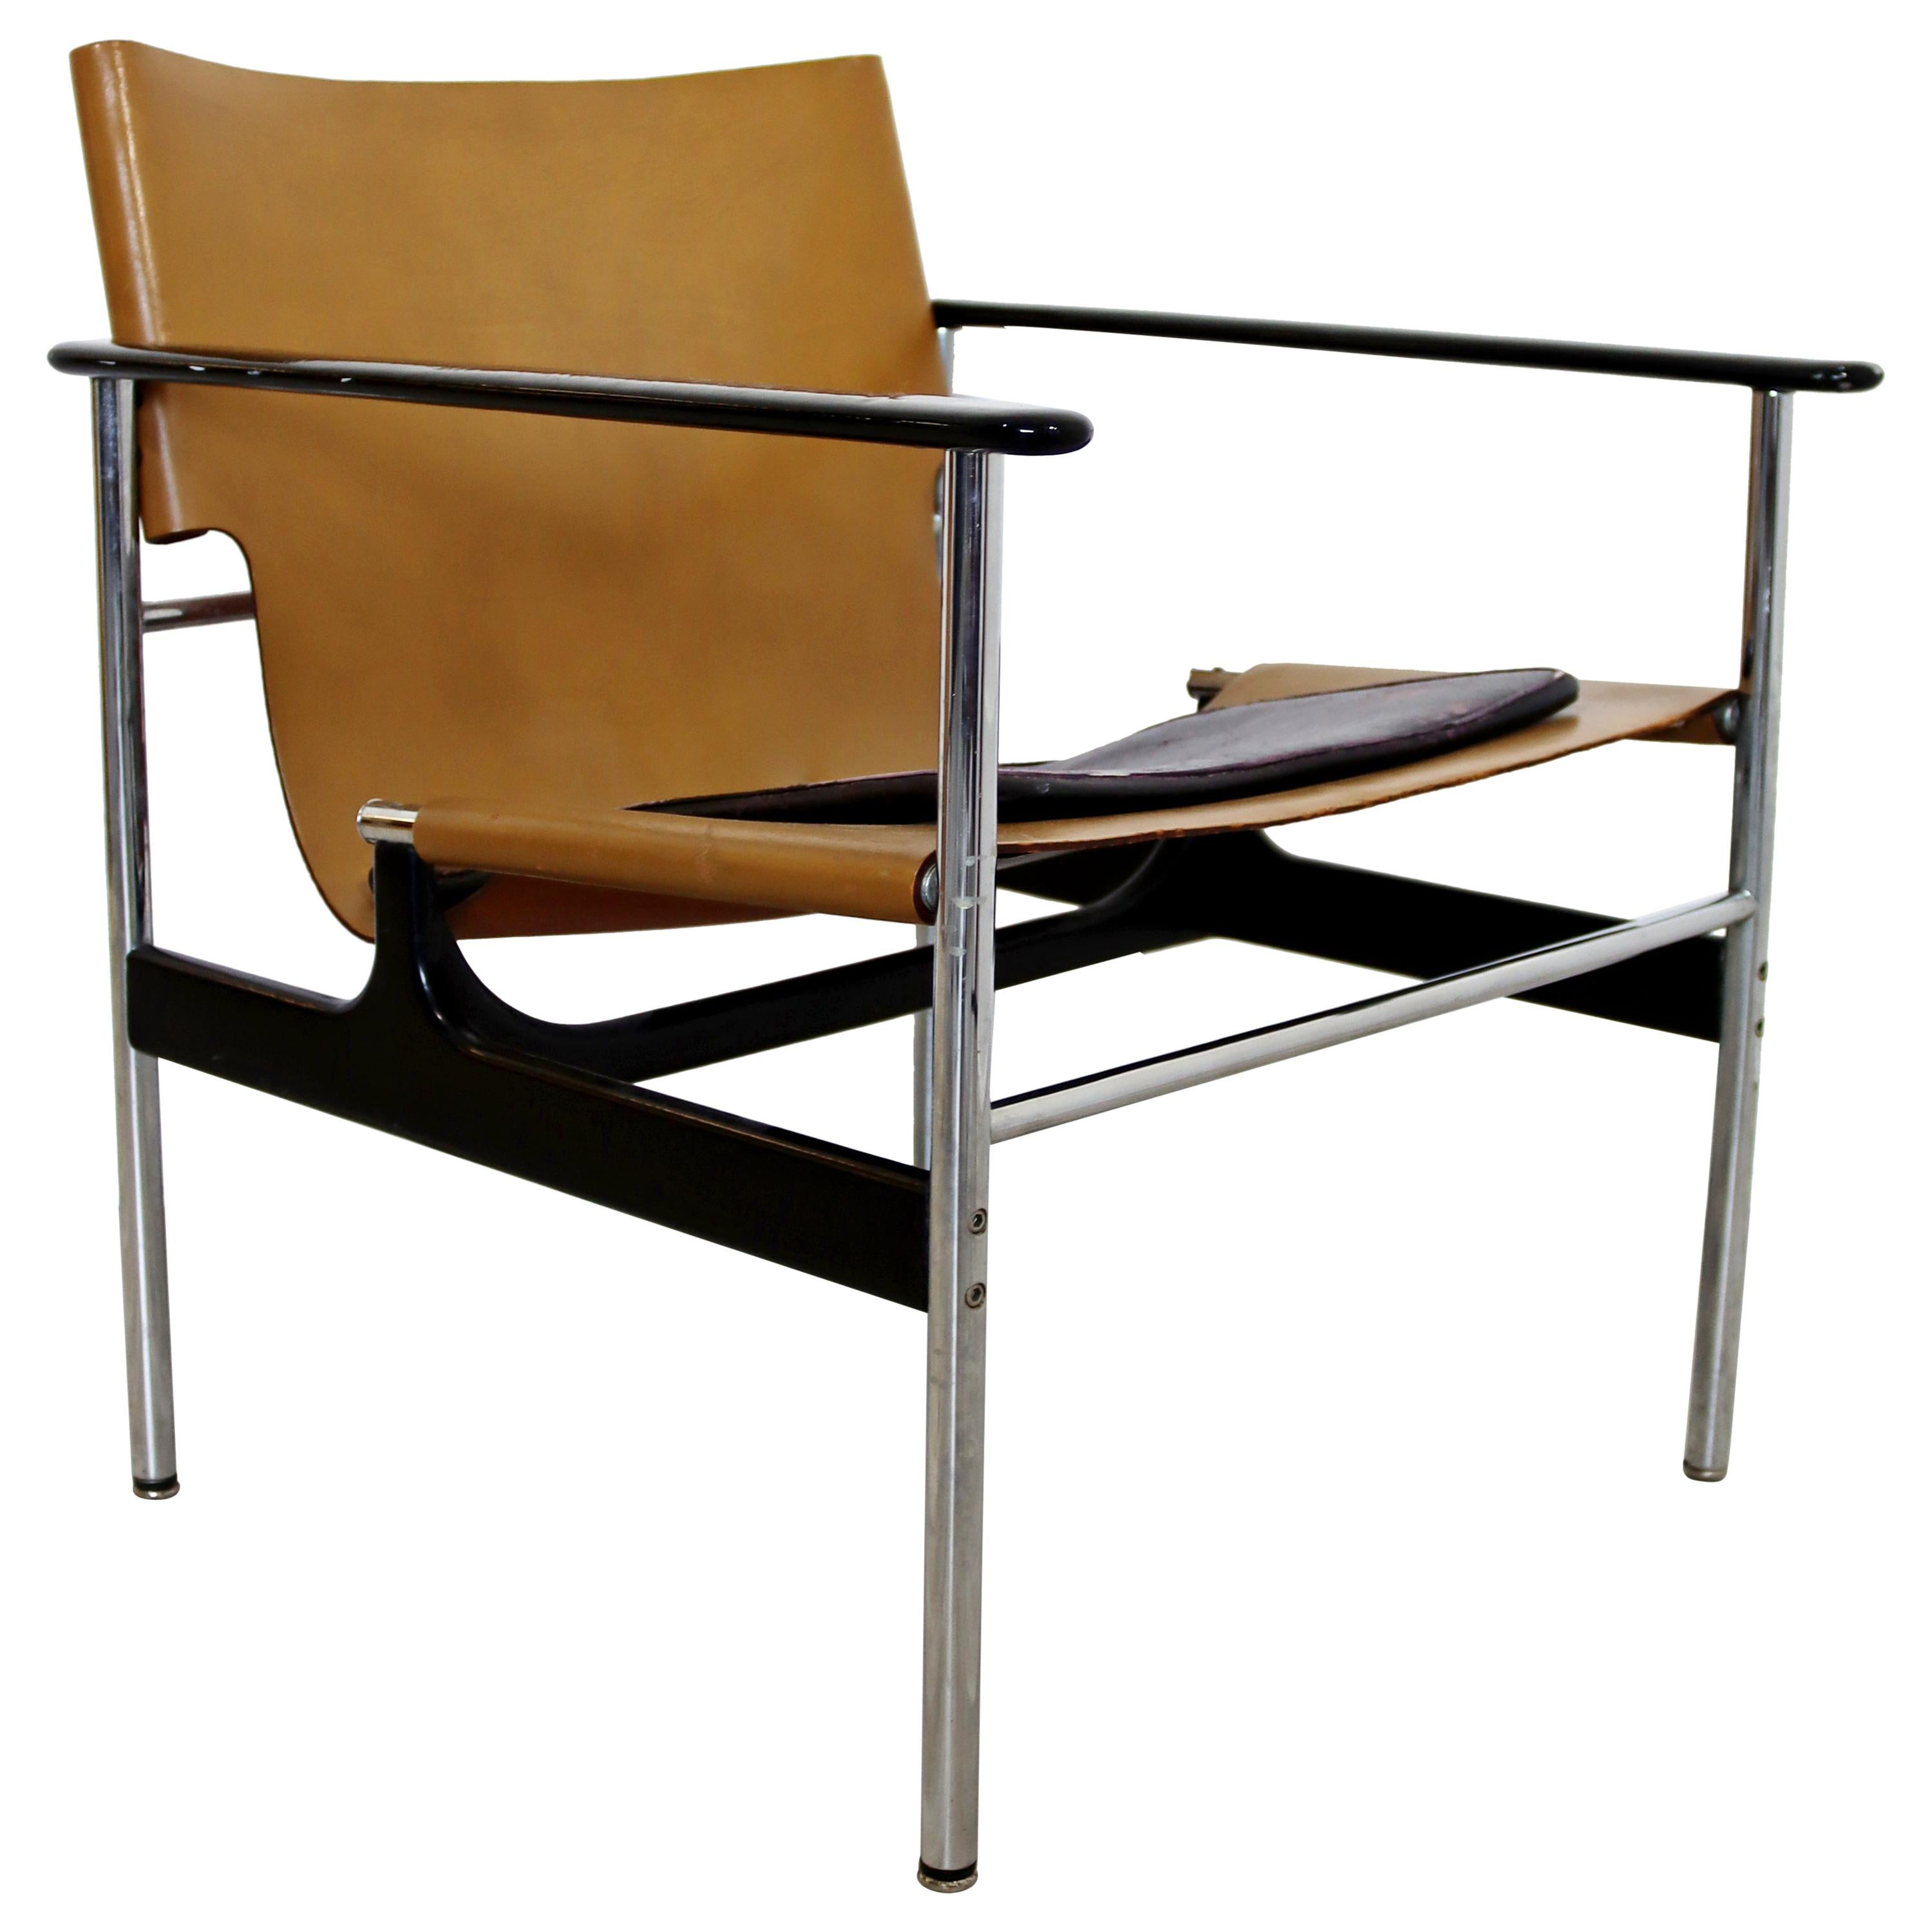 Mid-Century Modern Pollock for Knoll Leather Chrome Sling Lounge Chair, 1960s